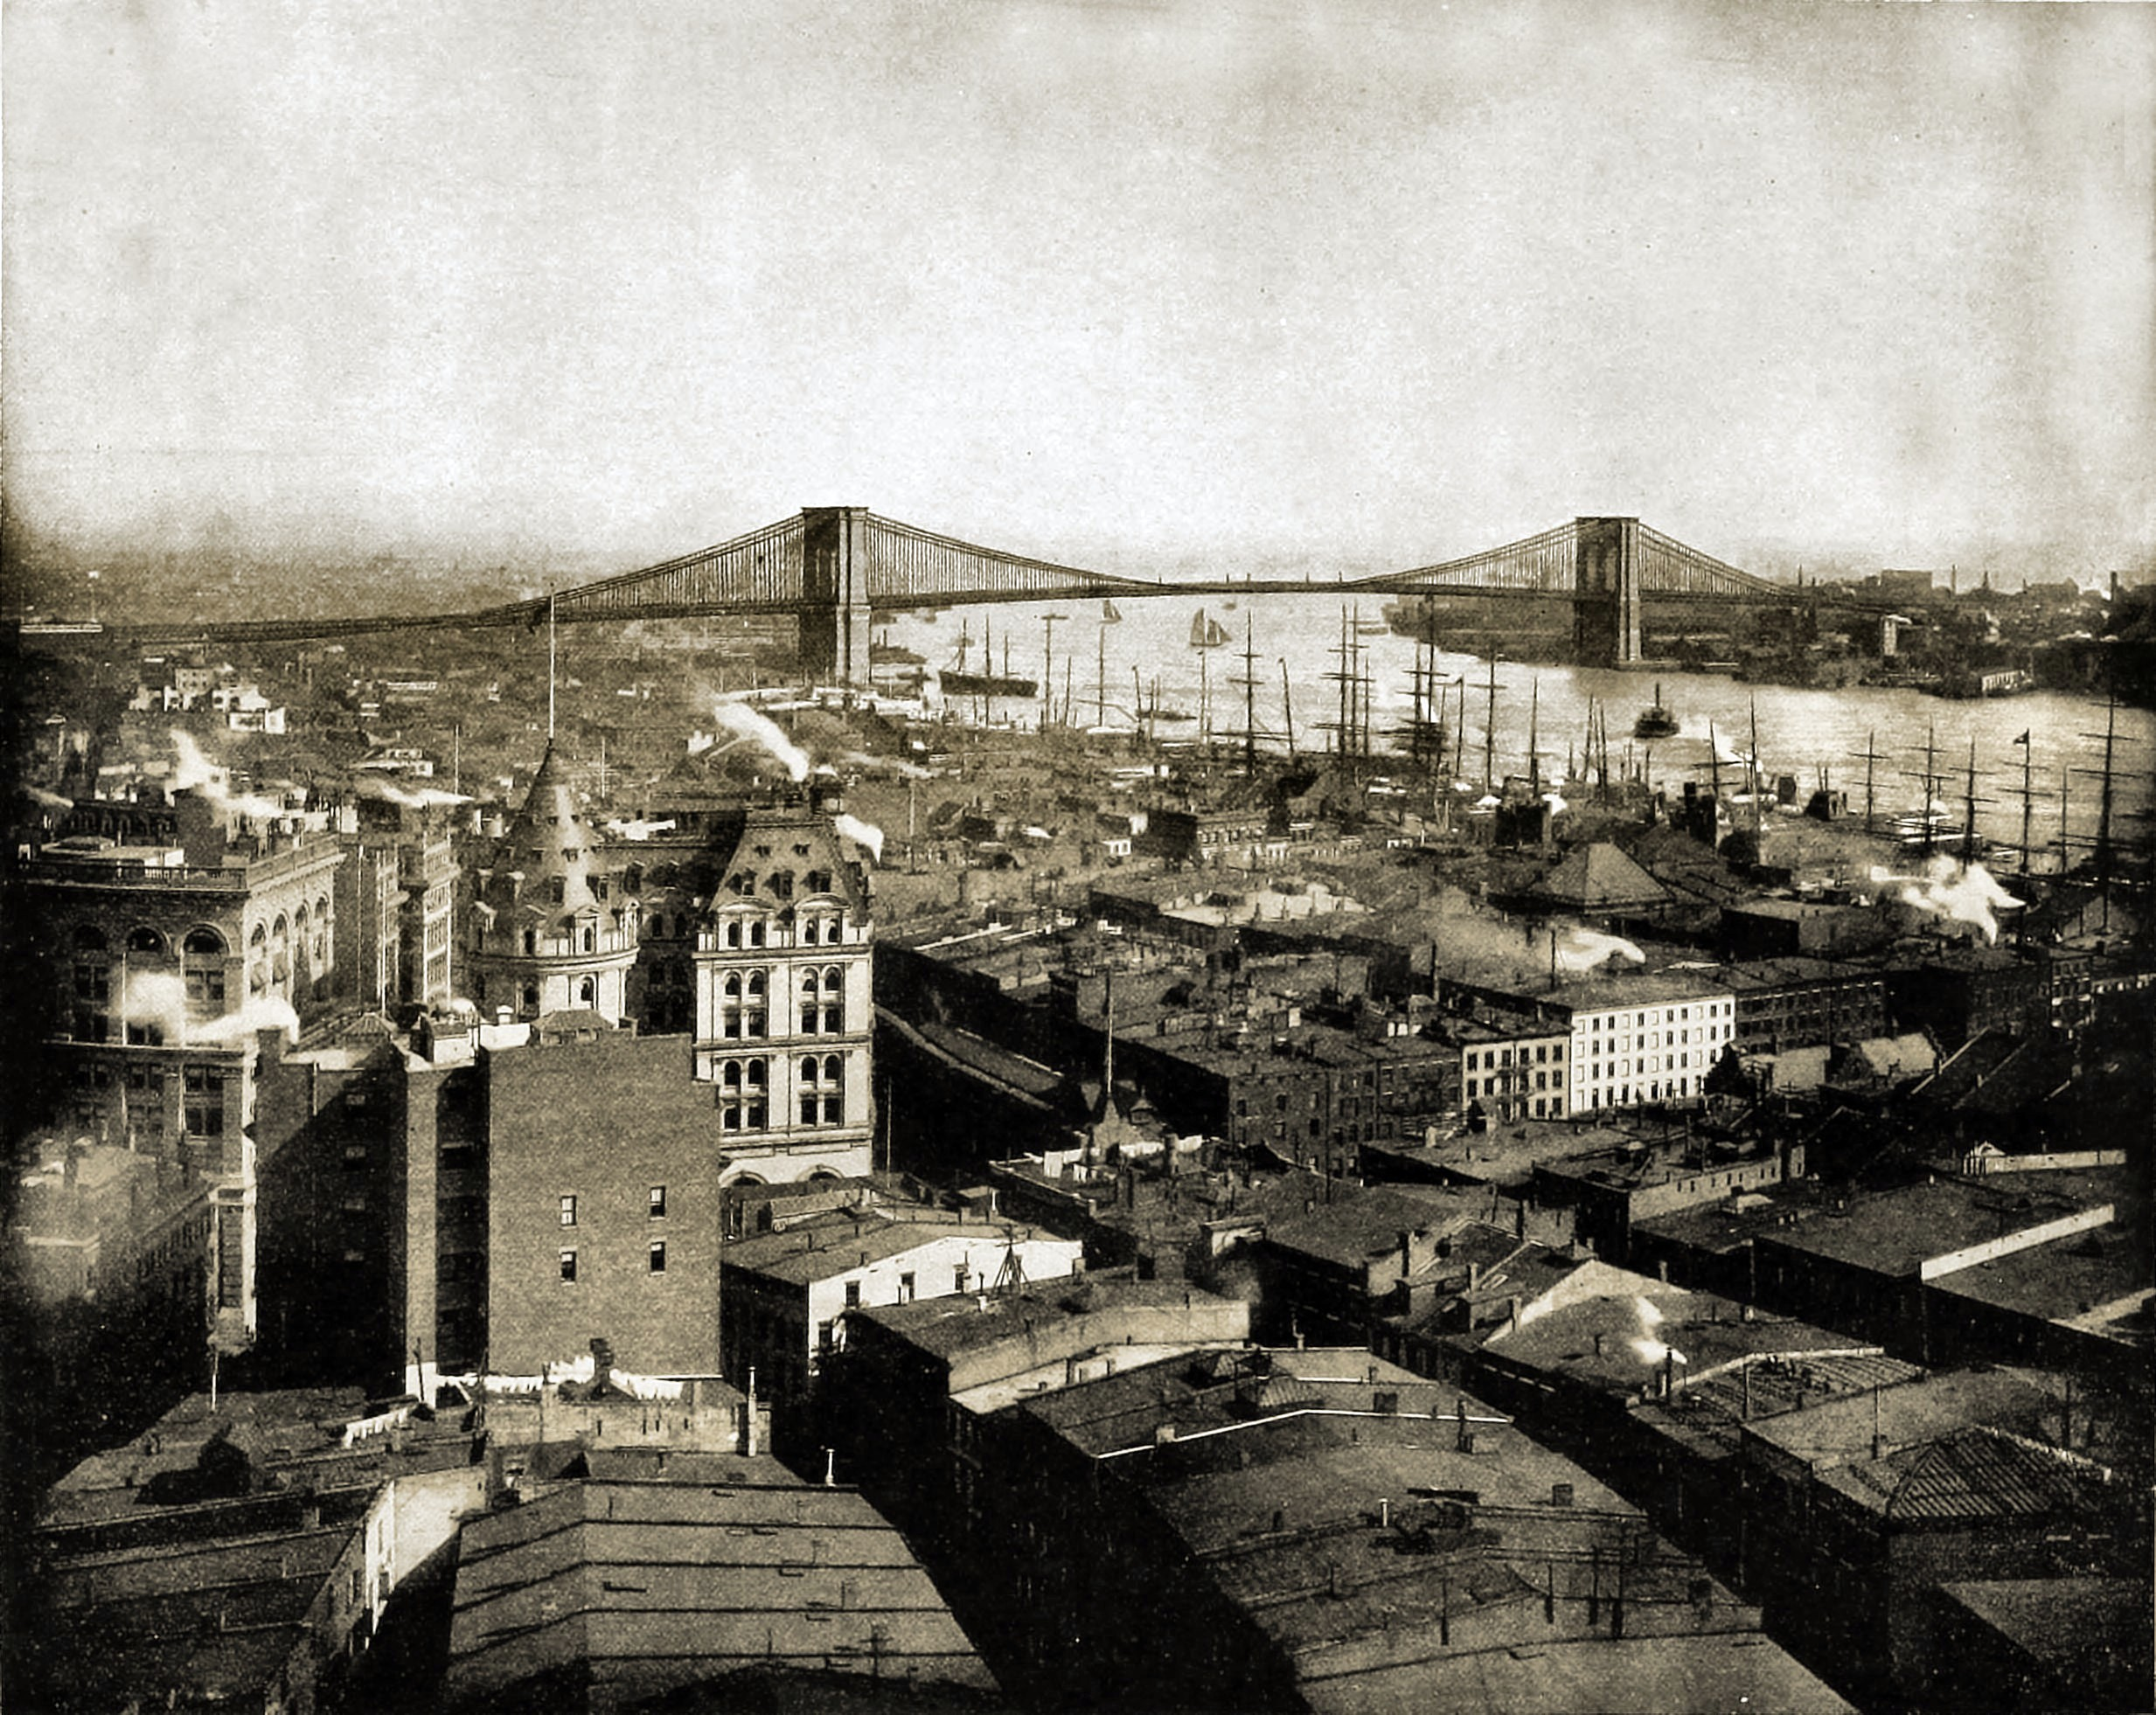 New York and Brooklyn Bridge, USA about 1892